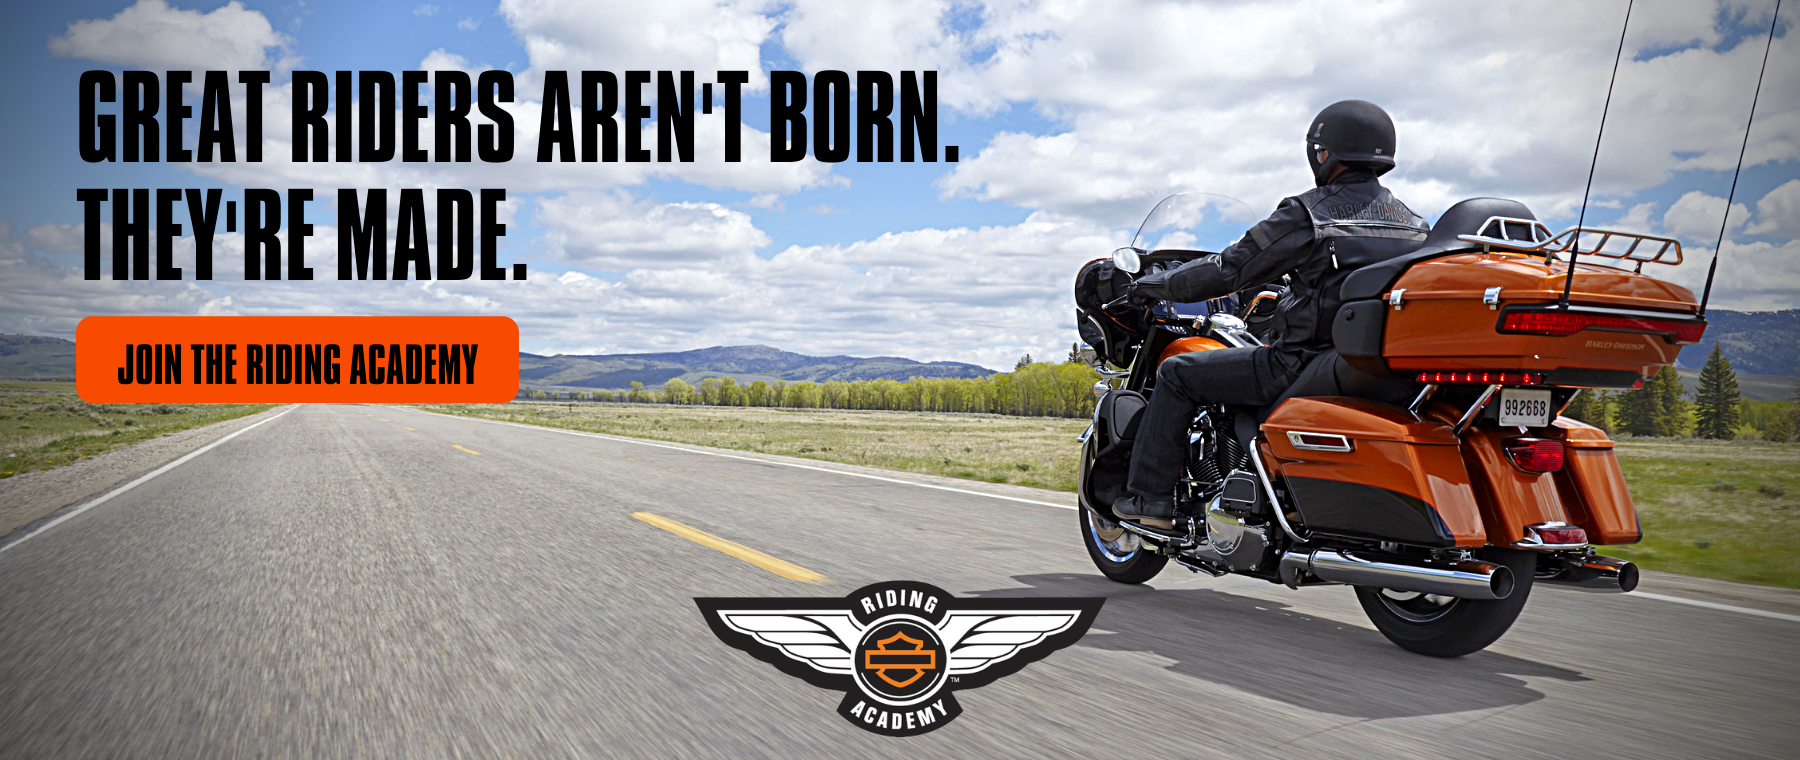 Copy of Great Riders aren't born. They're made.